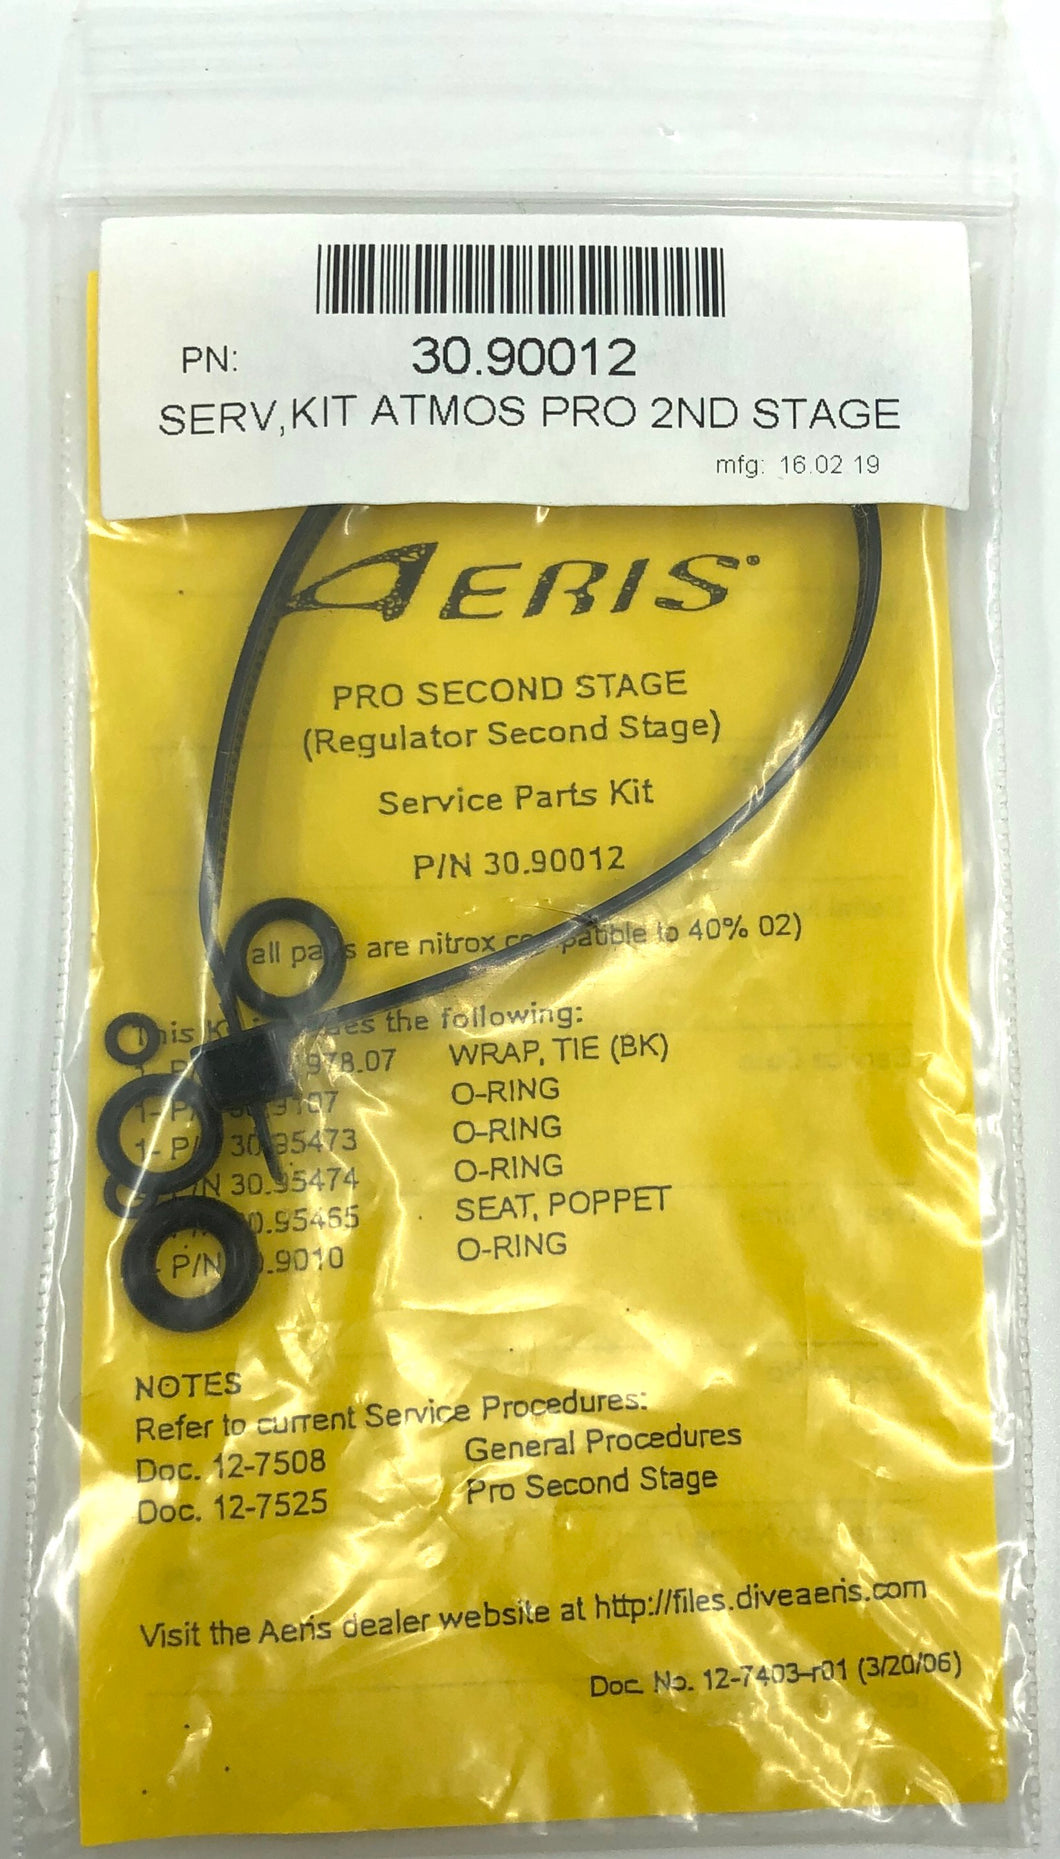 Aeris Atmos Pro Second Stage Service Kit